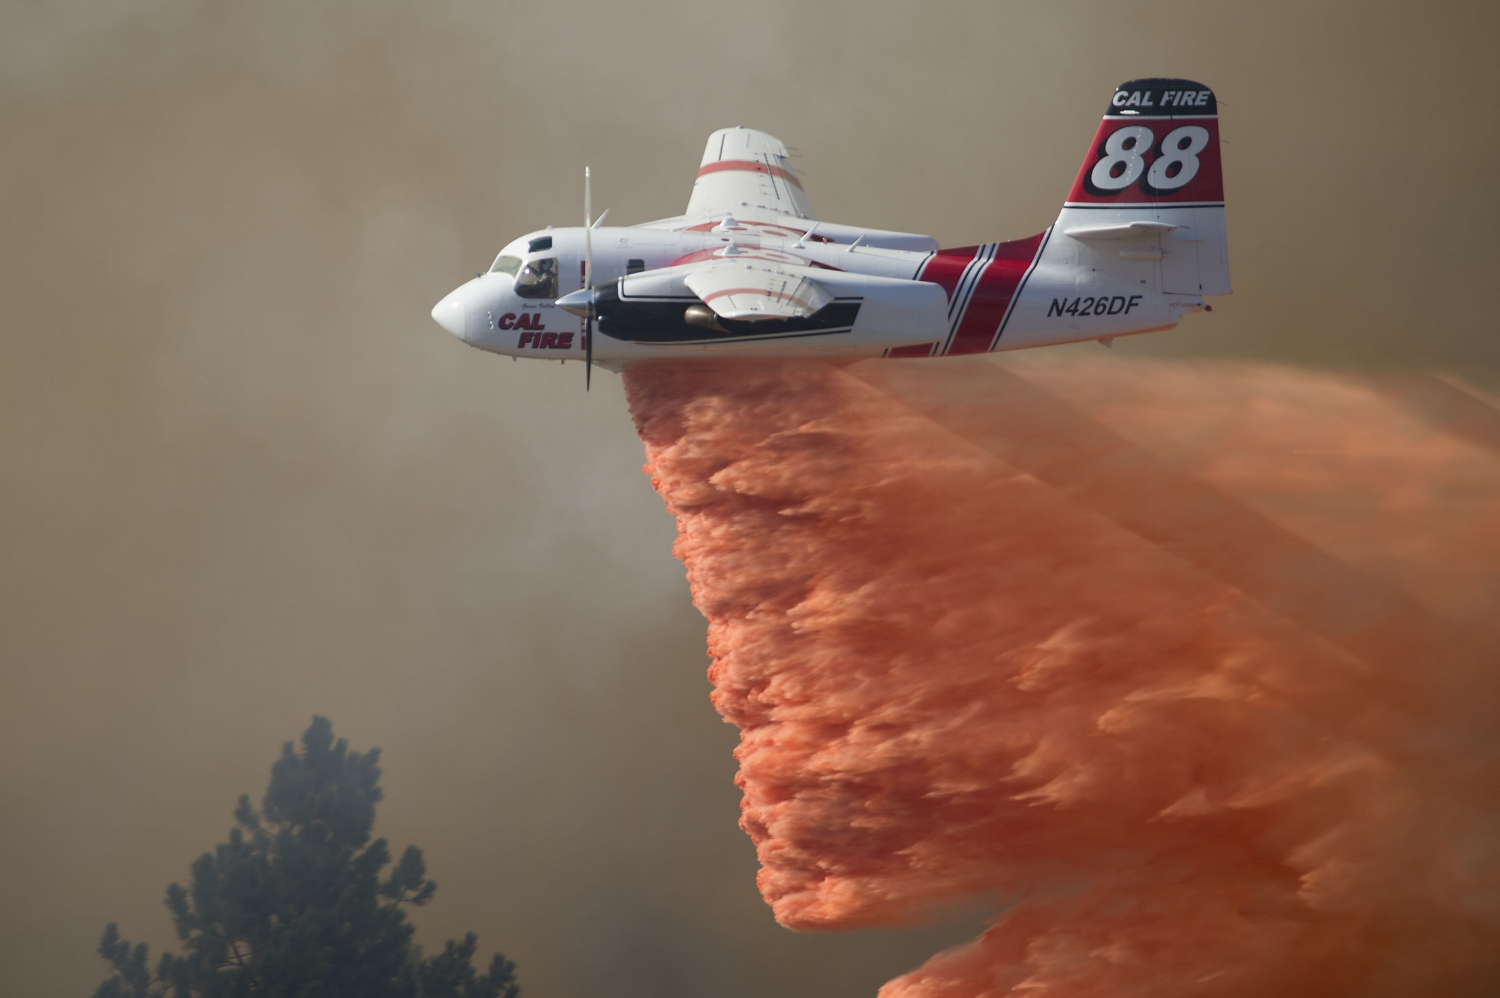 A Cal Fire aircraft drops fire retardant on a wild land fire burning near the Story winery in Plymouth, CA on Friday, July 25, 2014.